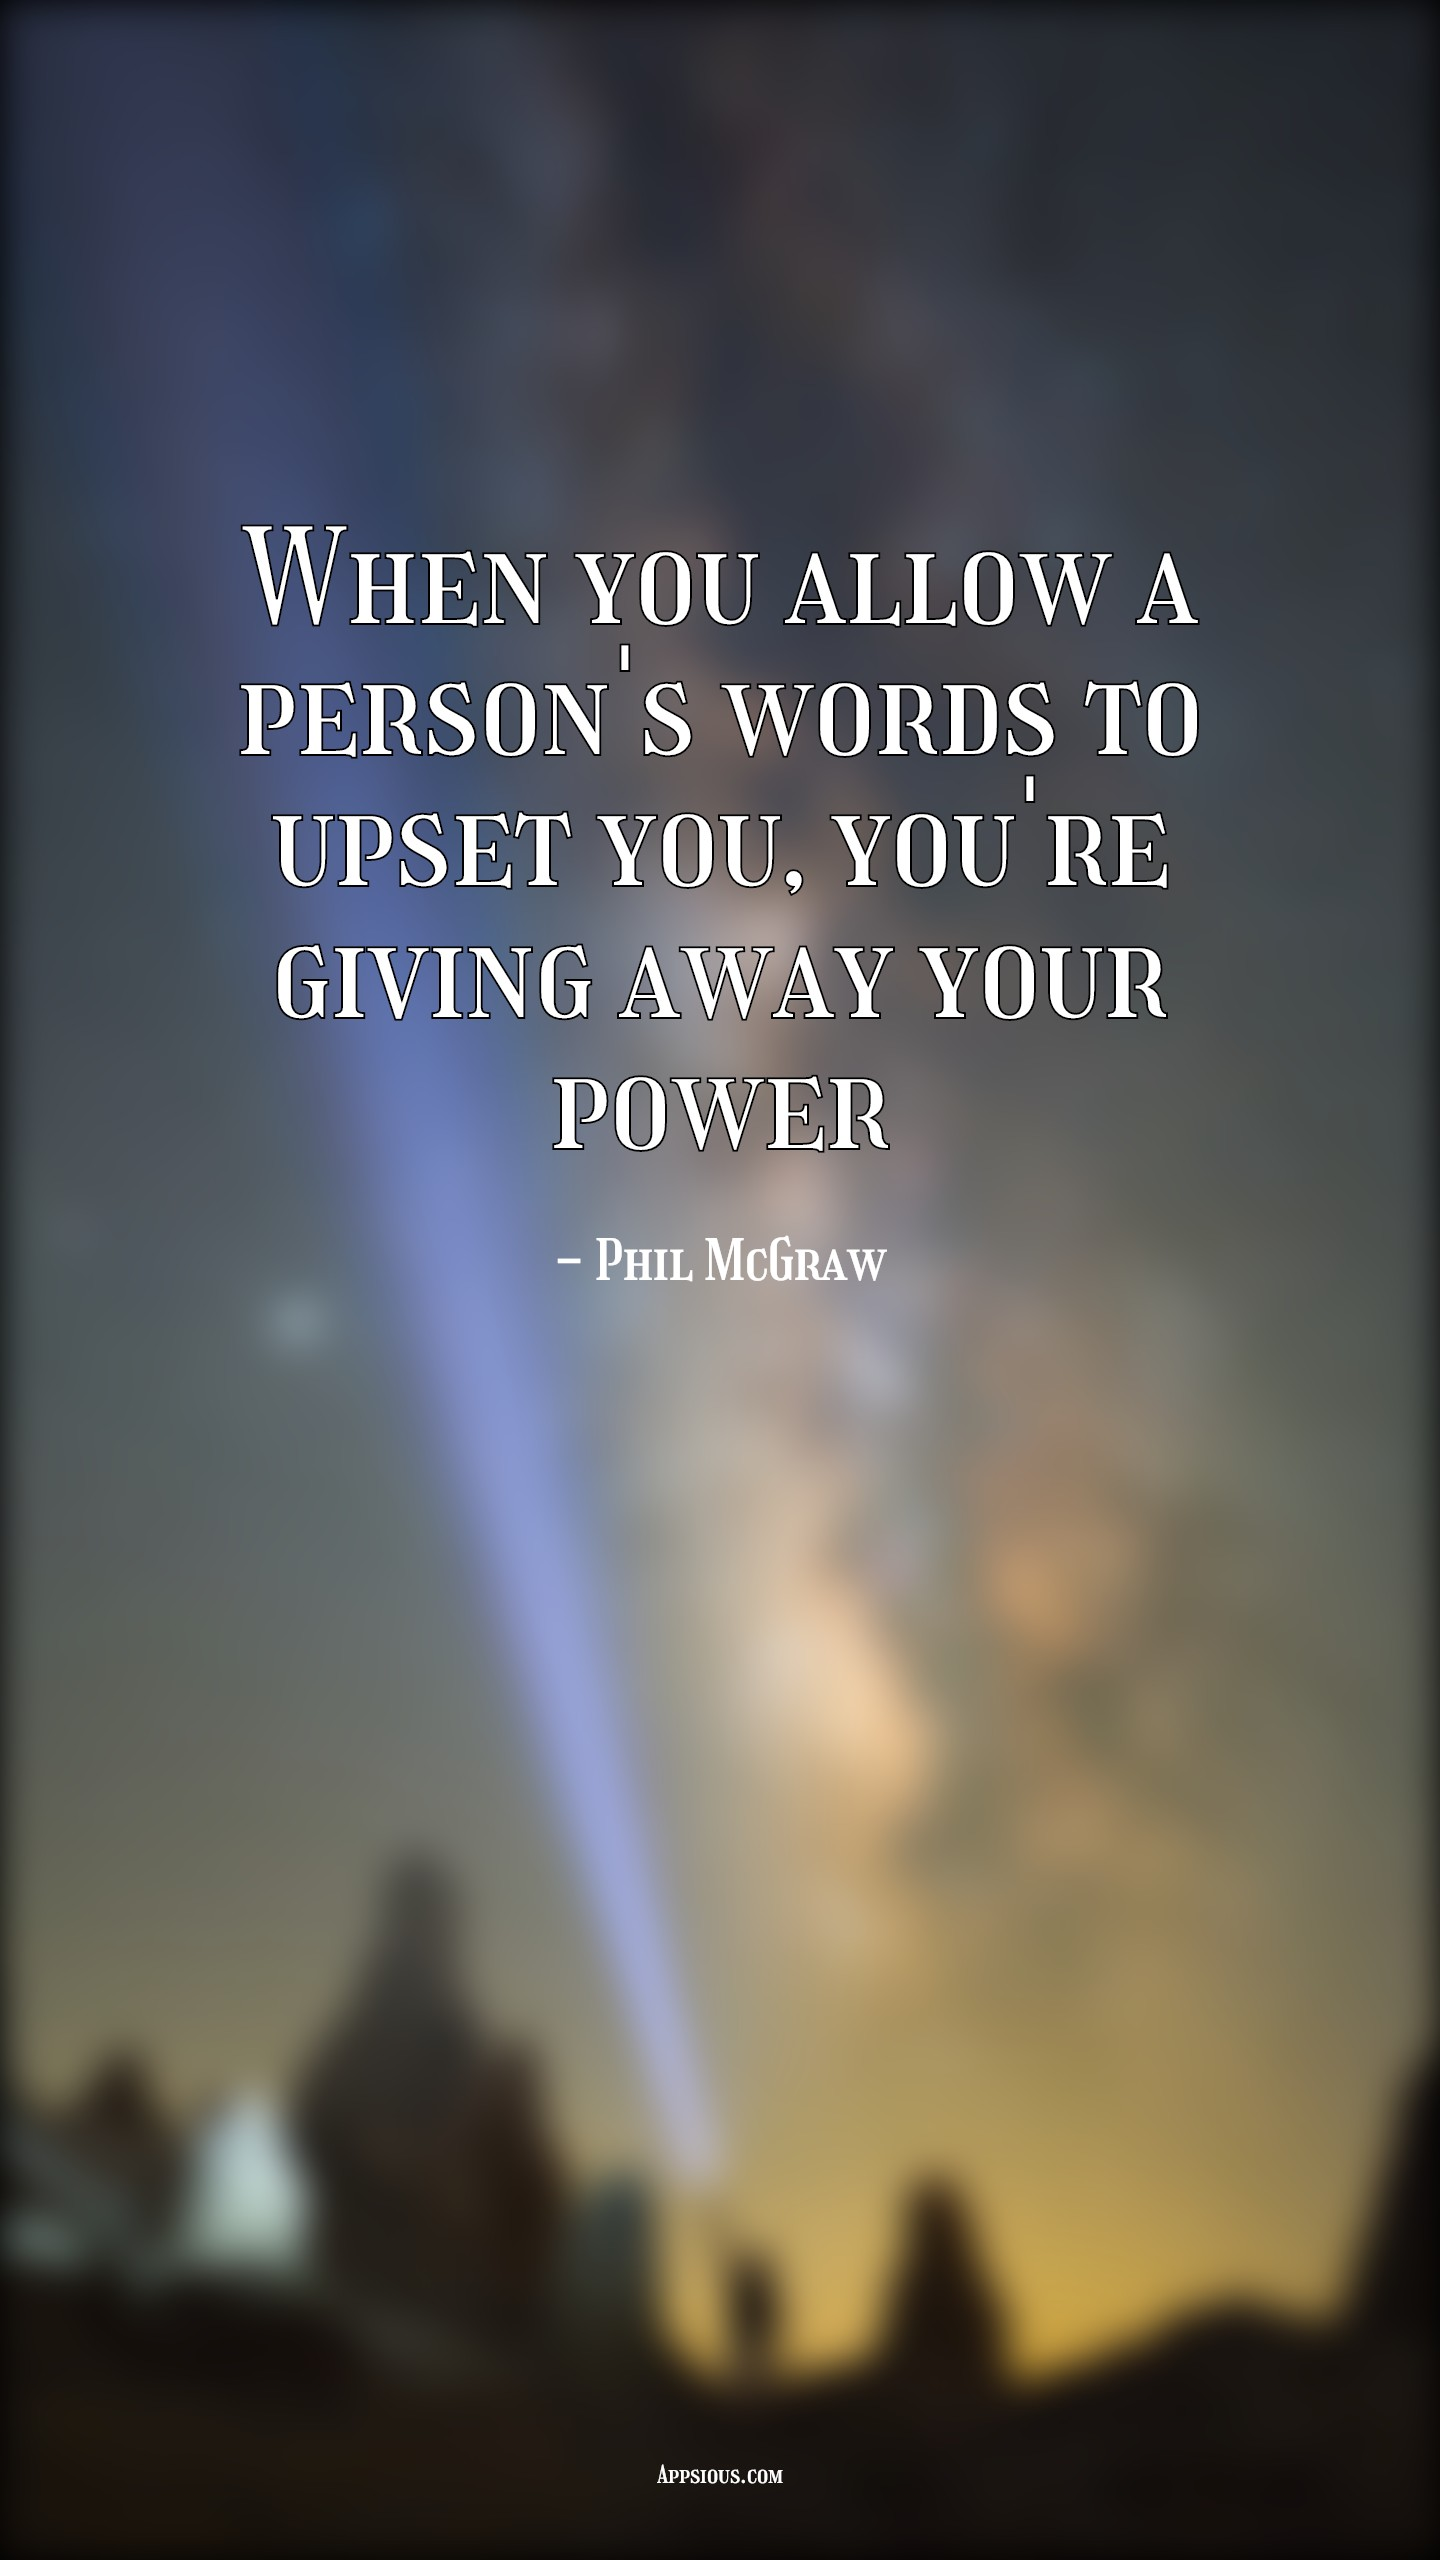 When you allow a person's words to upset you, you're giving away your power